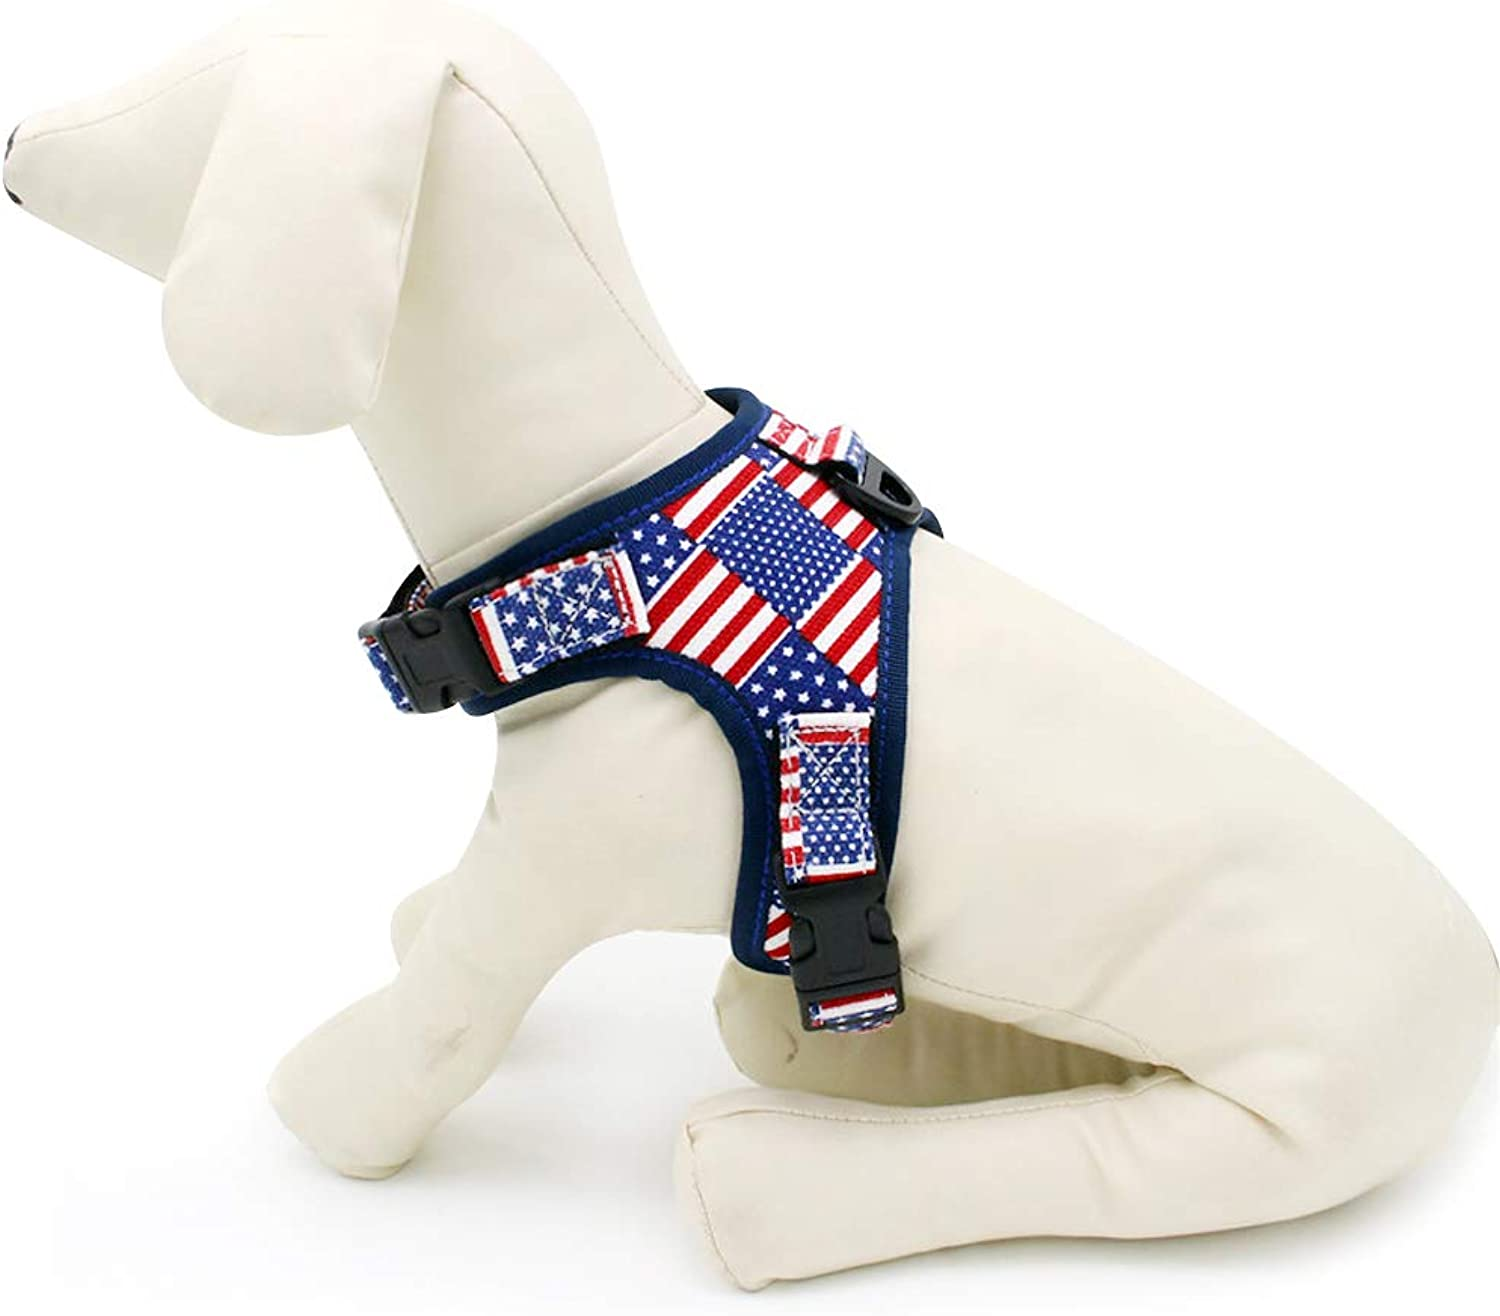 AIYOHE Dog Harnesses American Flag Pet Harness Adjustable Outdoor Pet Vest for Small, Medium Dog, Perfect for Daily Training Walking Running (L(22.8 30.7  Chest Girth))